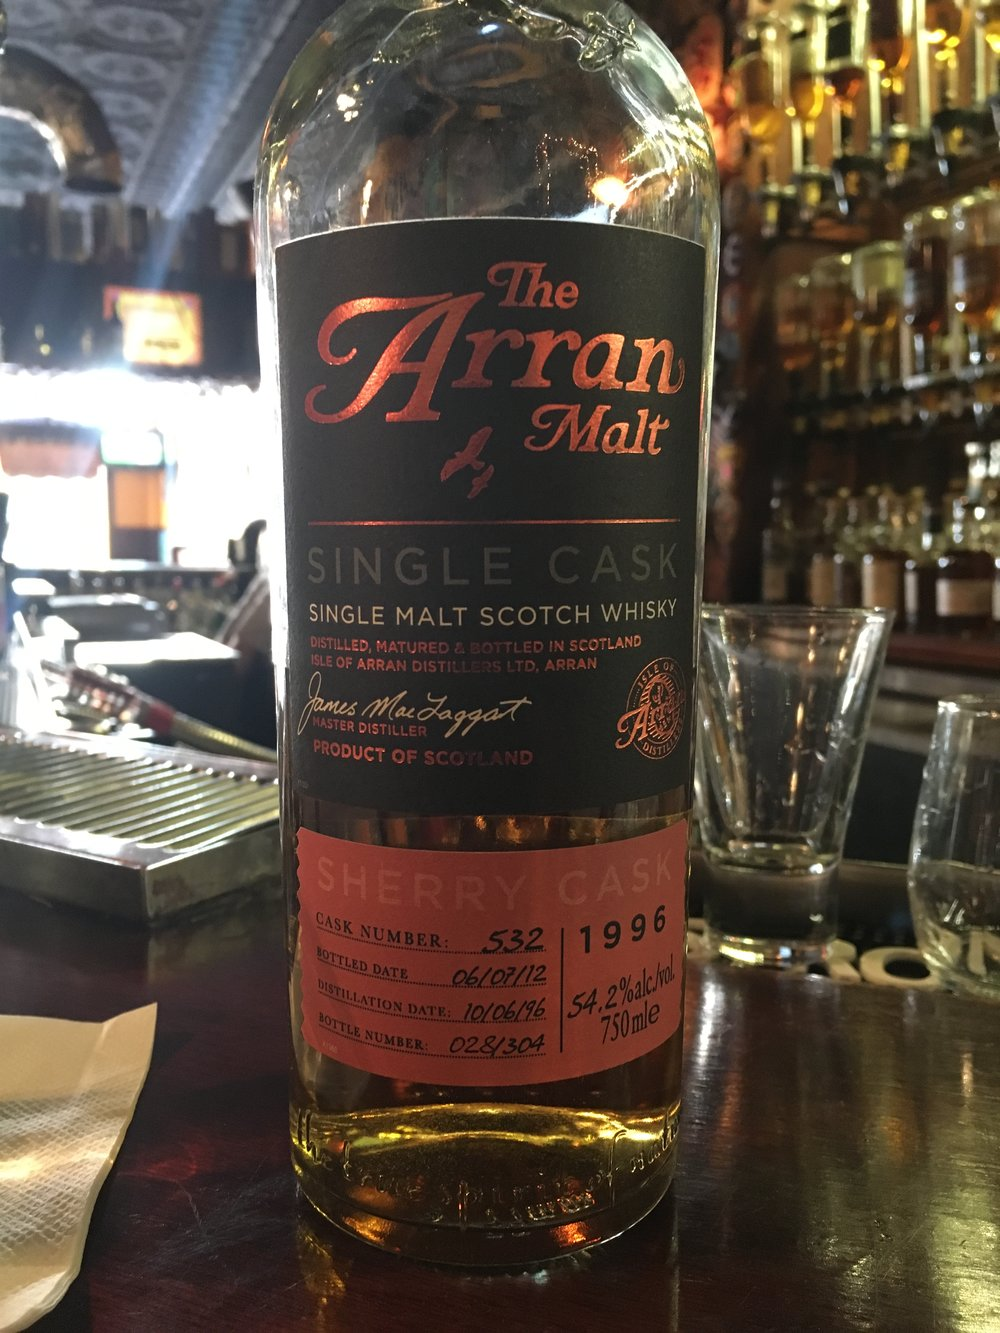 16 Year Old | 54.2% ABV - Distillery | Isle of Arran Distillers